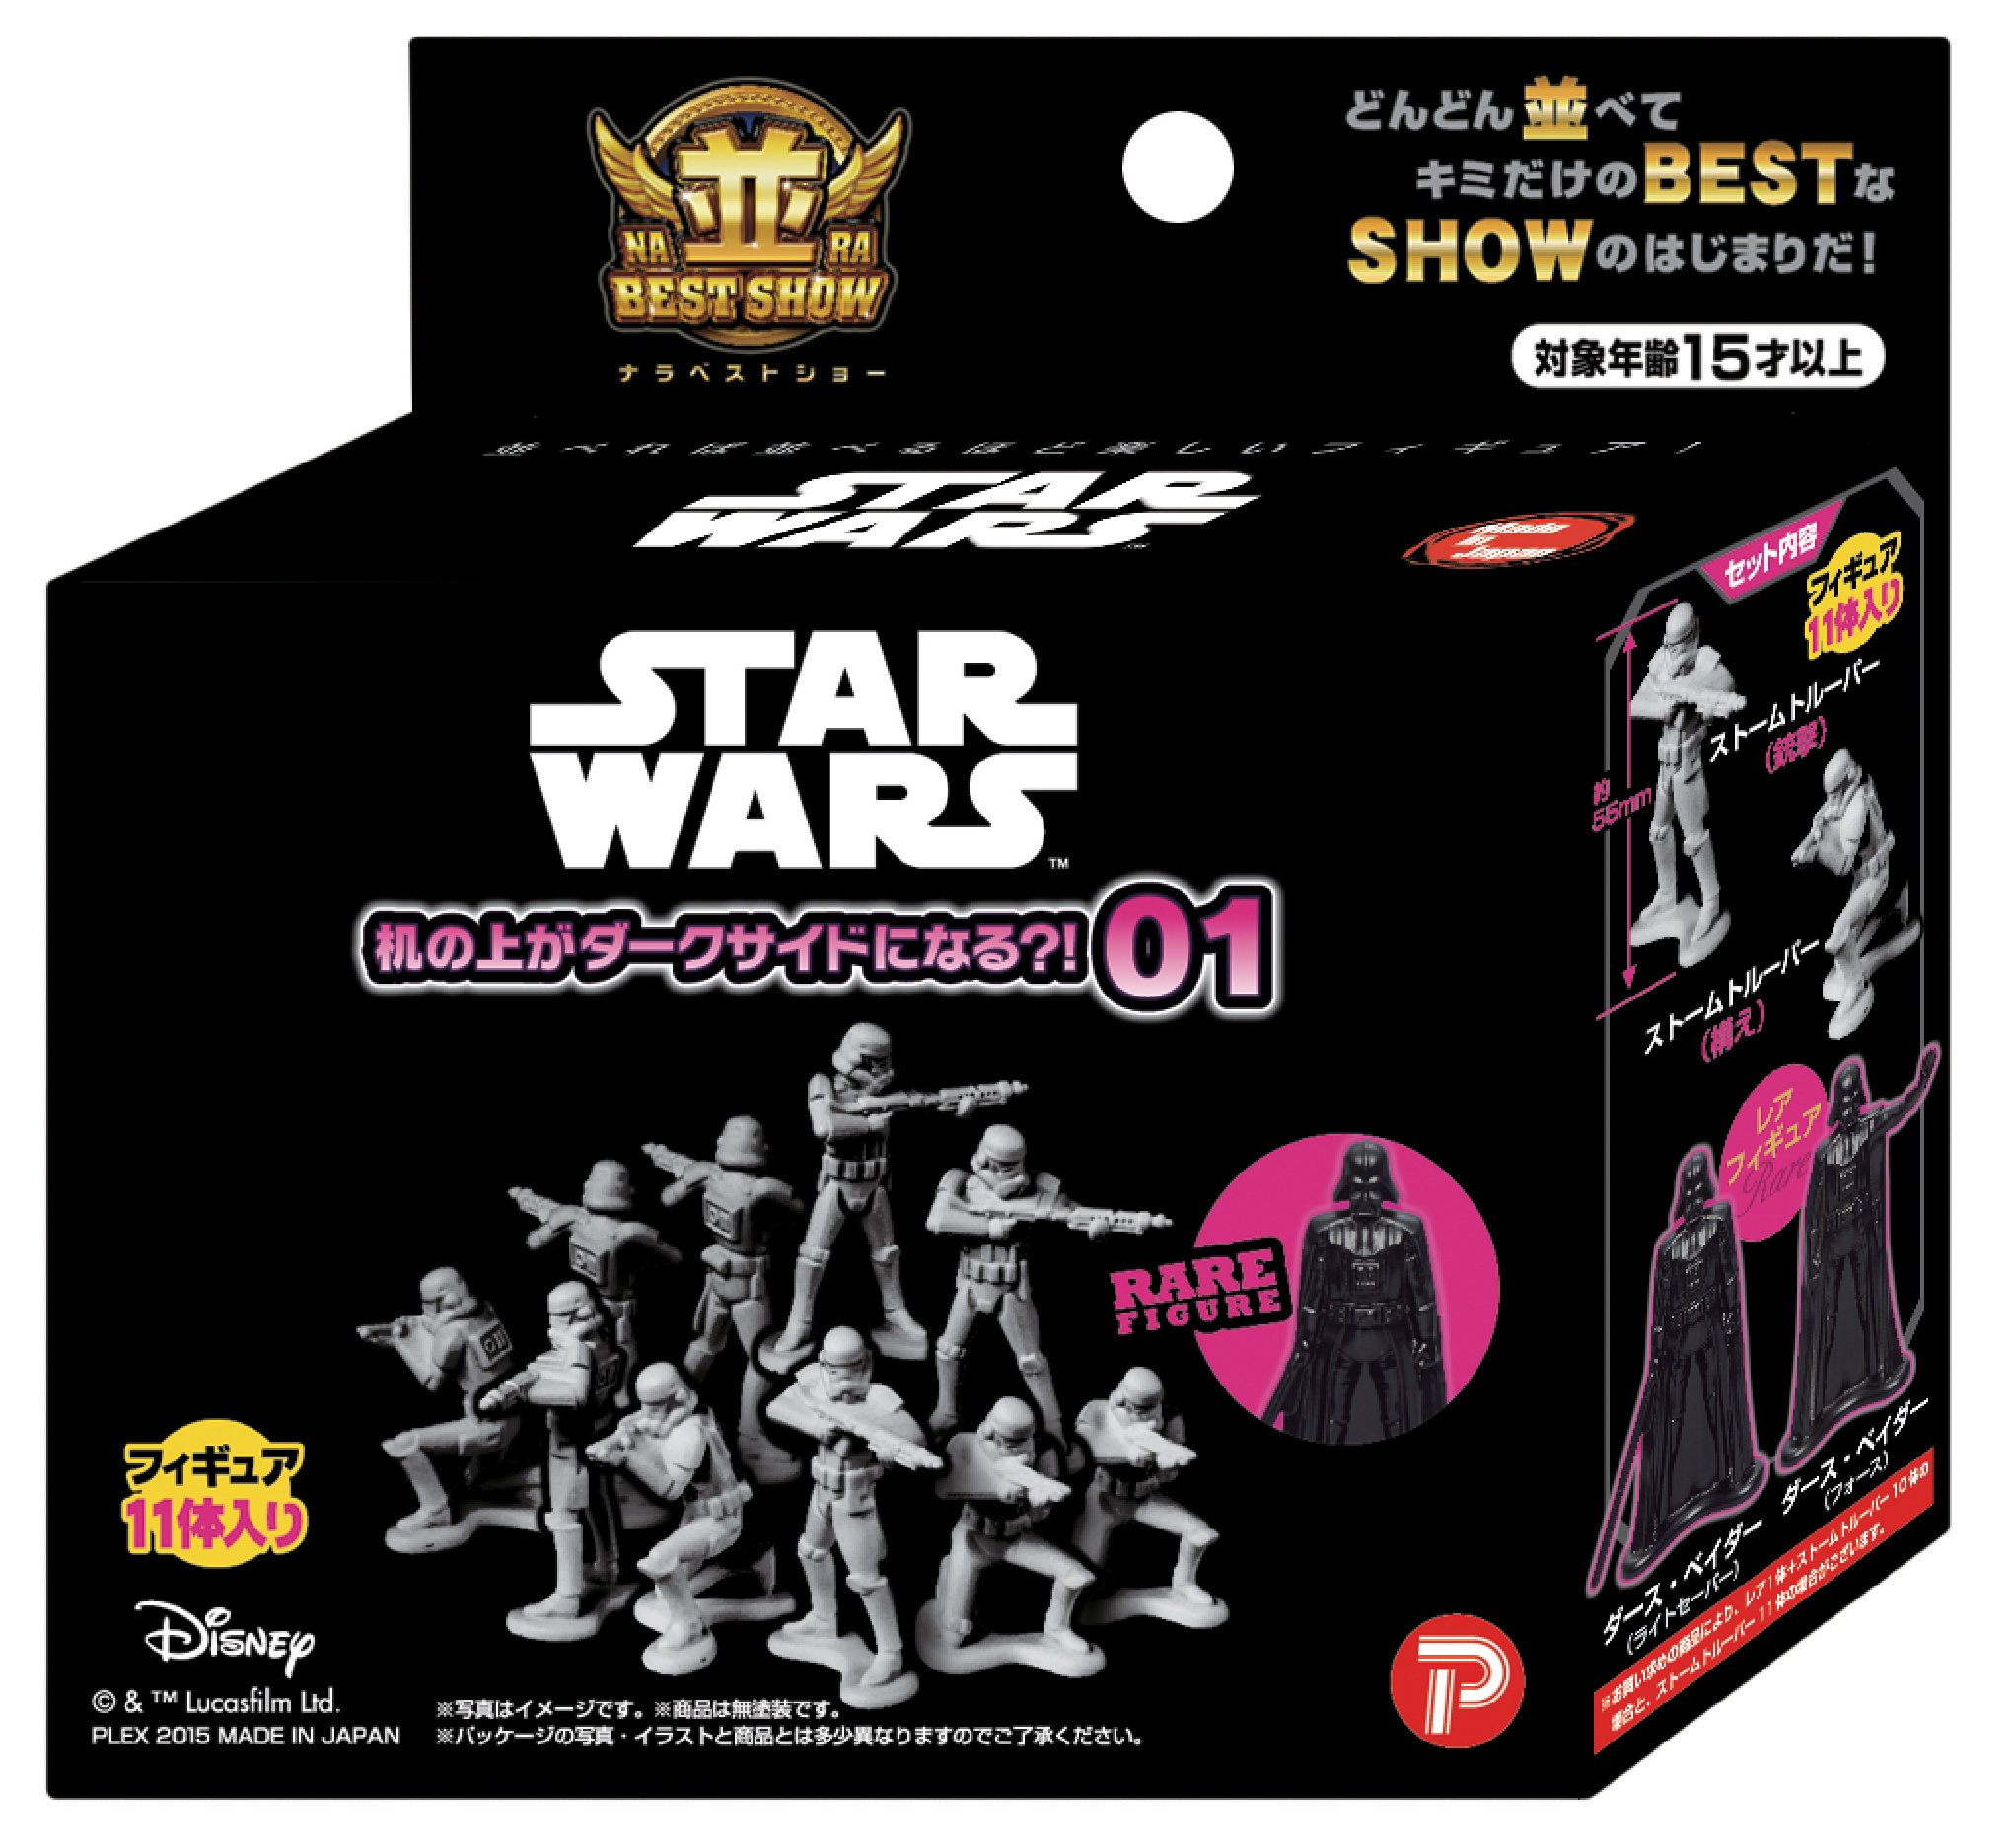 Nara-best Show Star Wars Desk Become the Dark Side!? 01 by Happinet